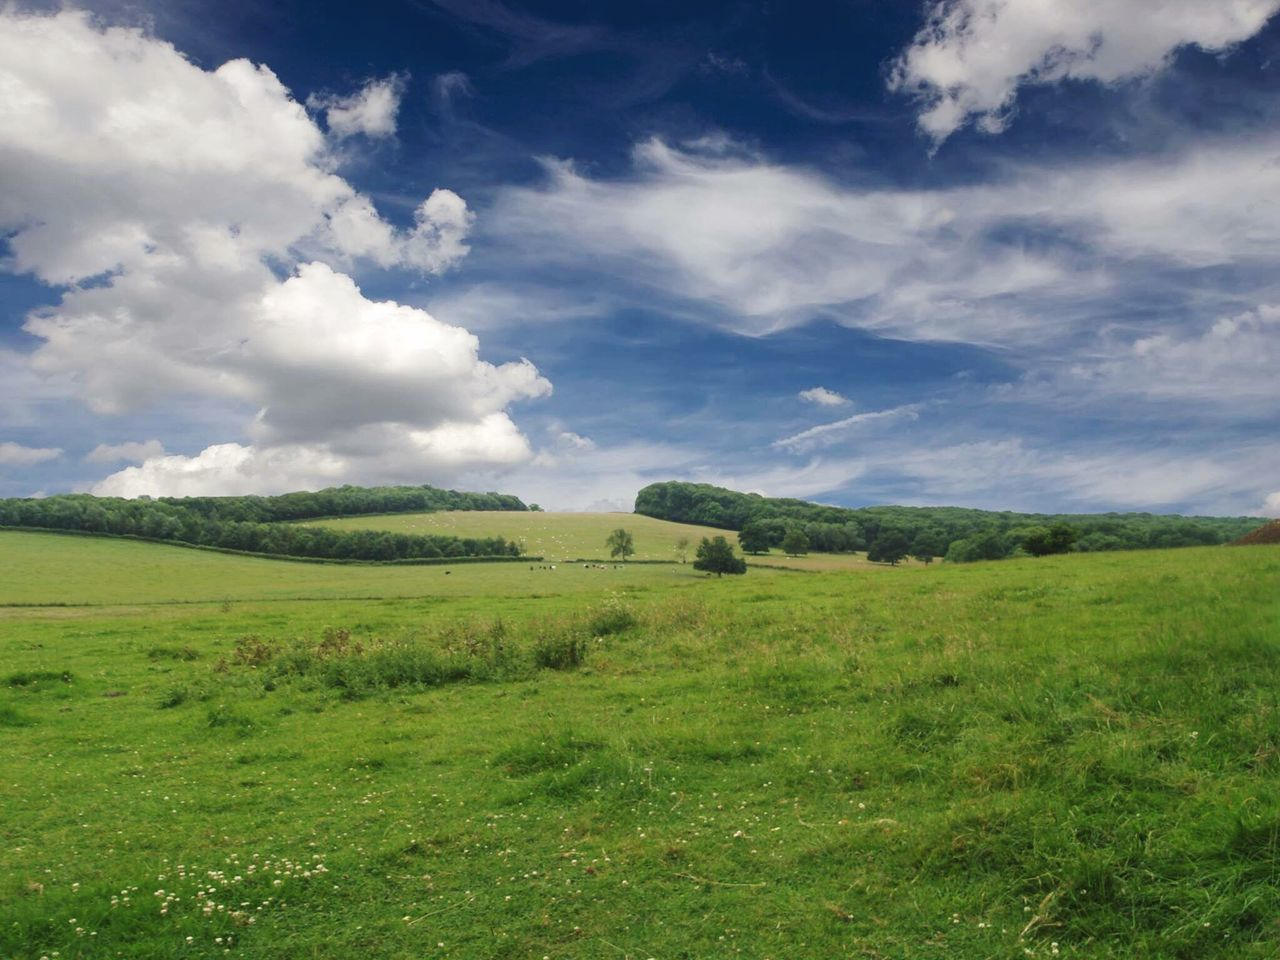 grass, landscape, field, nature, green color, no people, scenics, sky, beauty in nature, tranquility, day, outdoors